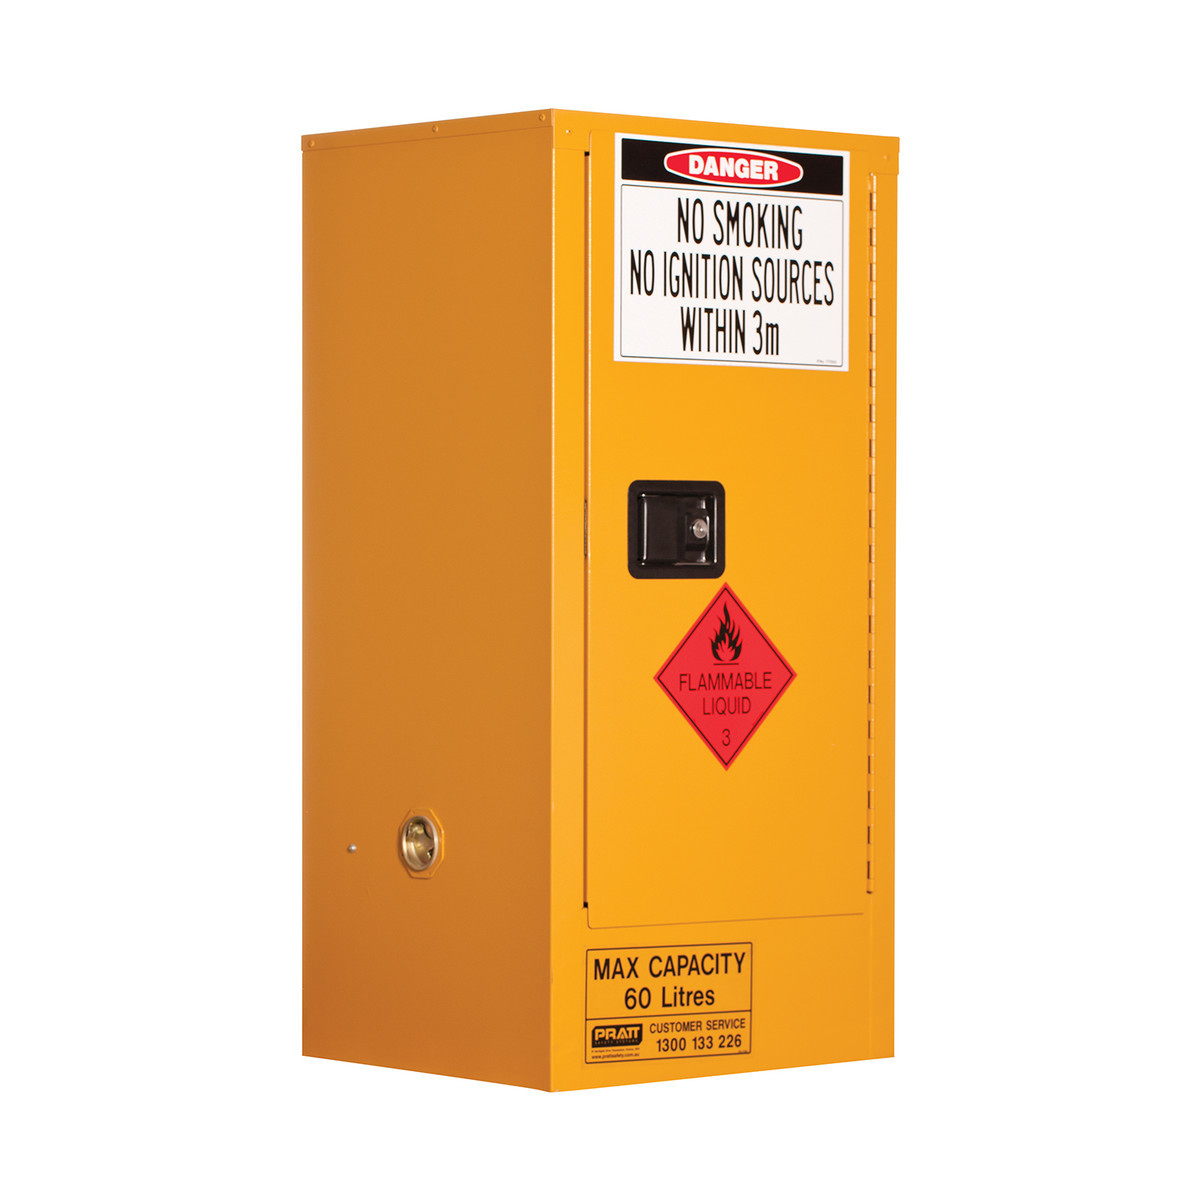 Flammable Storage Cabinet 60 Litres - 1 Door, 2 Shelf